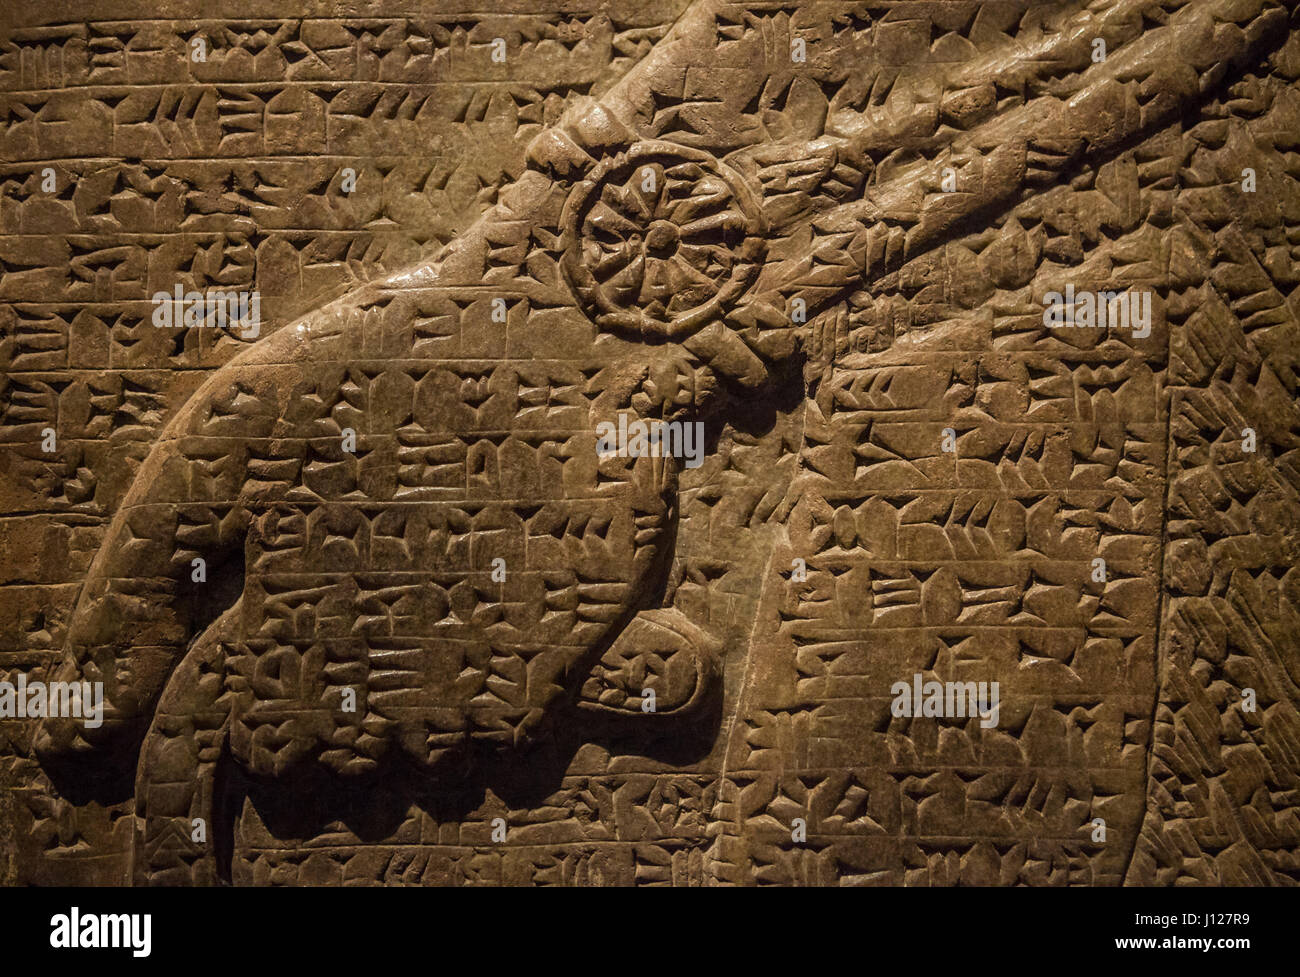 Sumerians Stock Photos & Sumerians Stock Images - Alamy